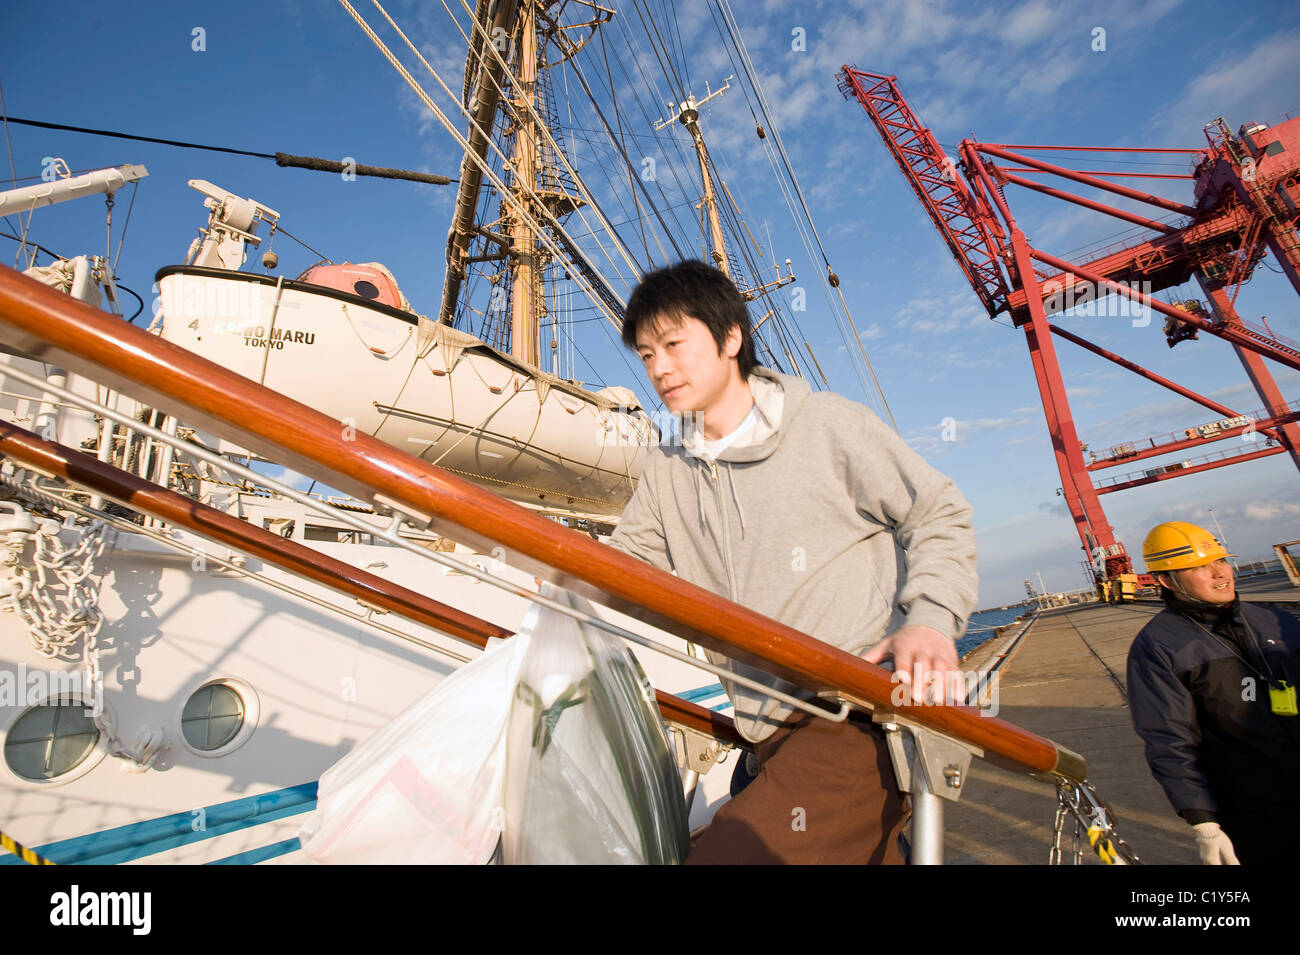 Akira Tamura, a member of the so-called Fukushima 50 boards the Kaiwomaru - Stock Image